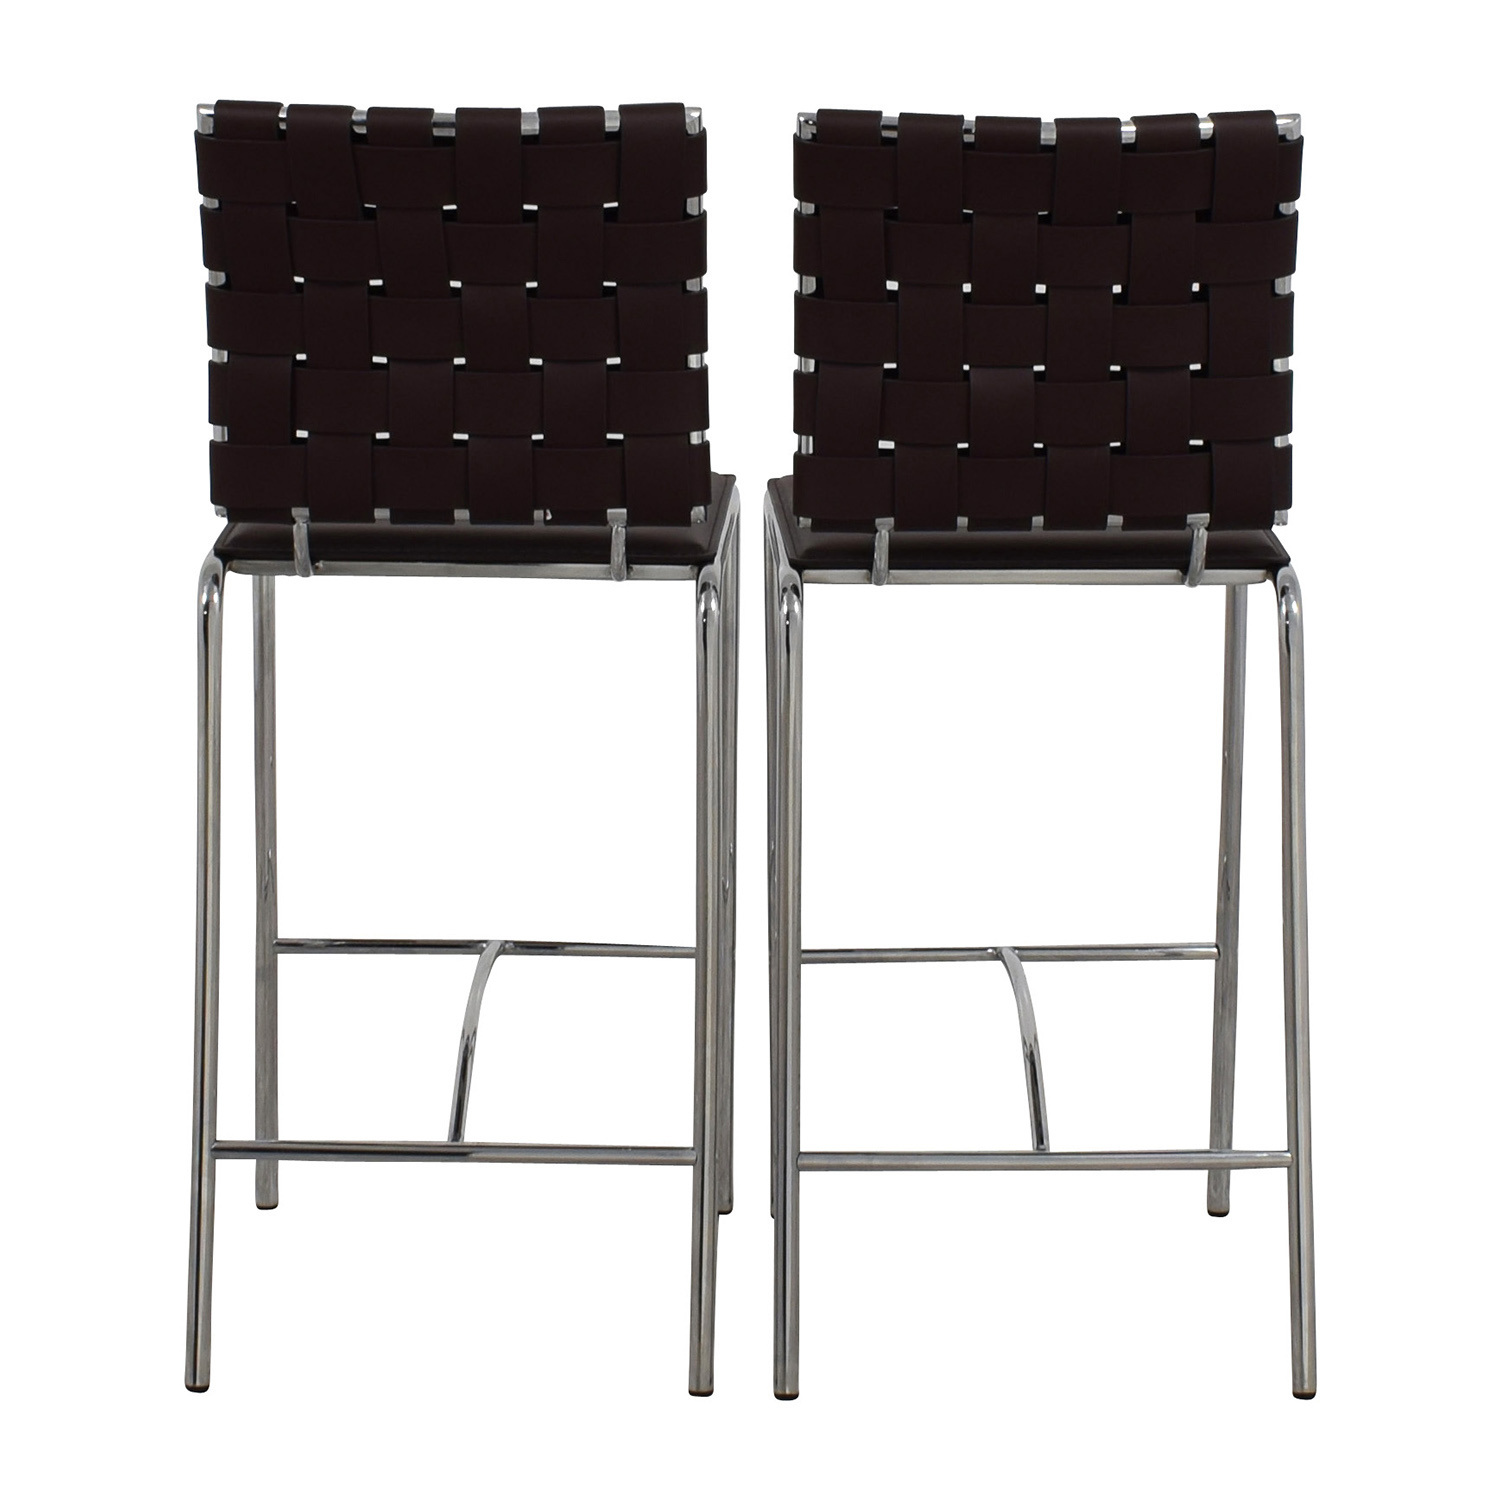 InMod InMod Carina-C Counter Chair for sale